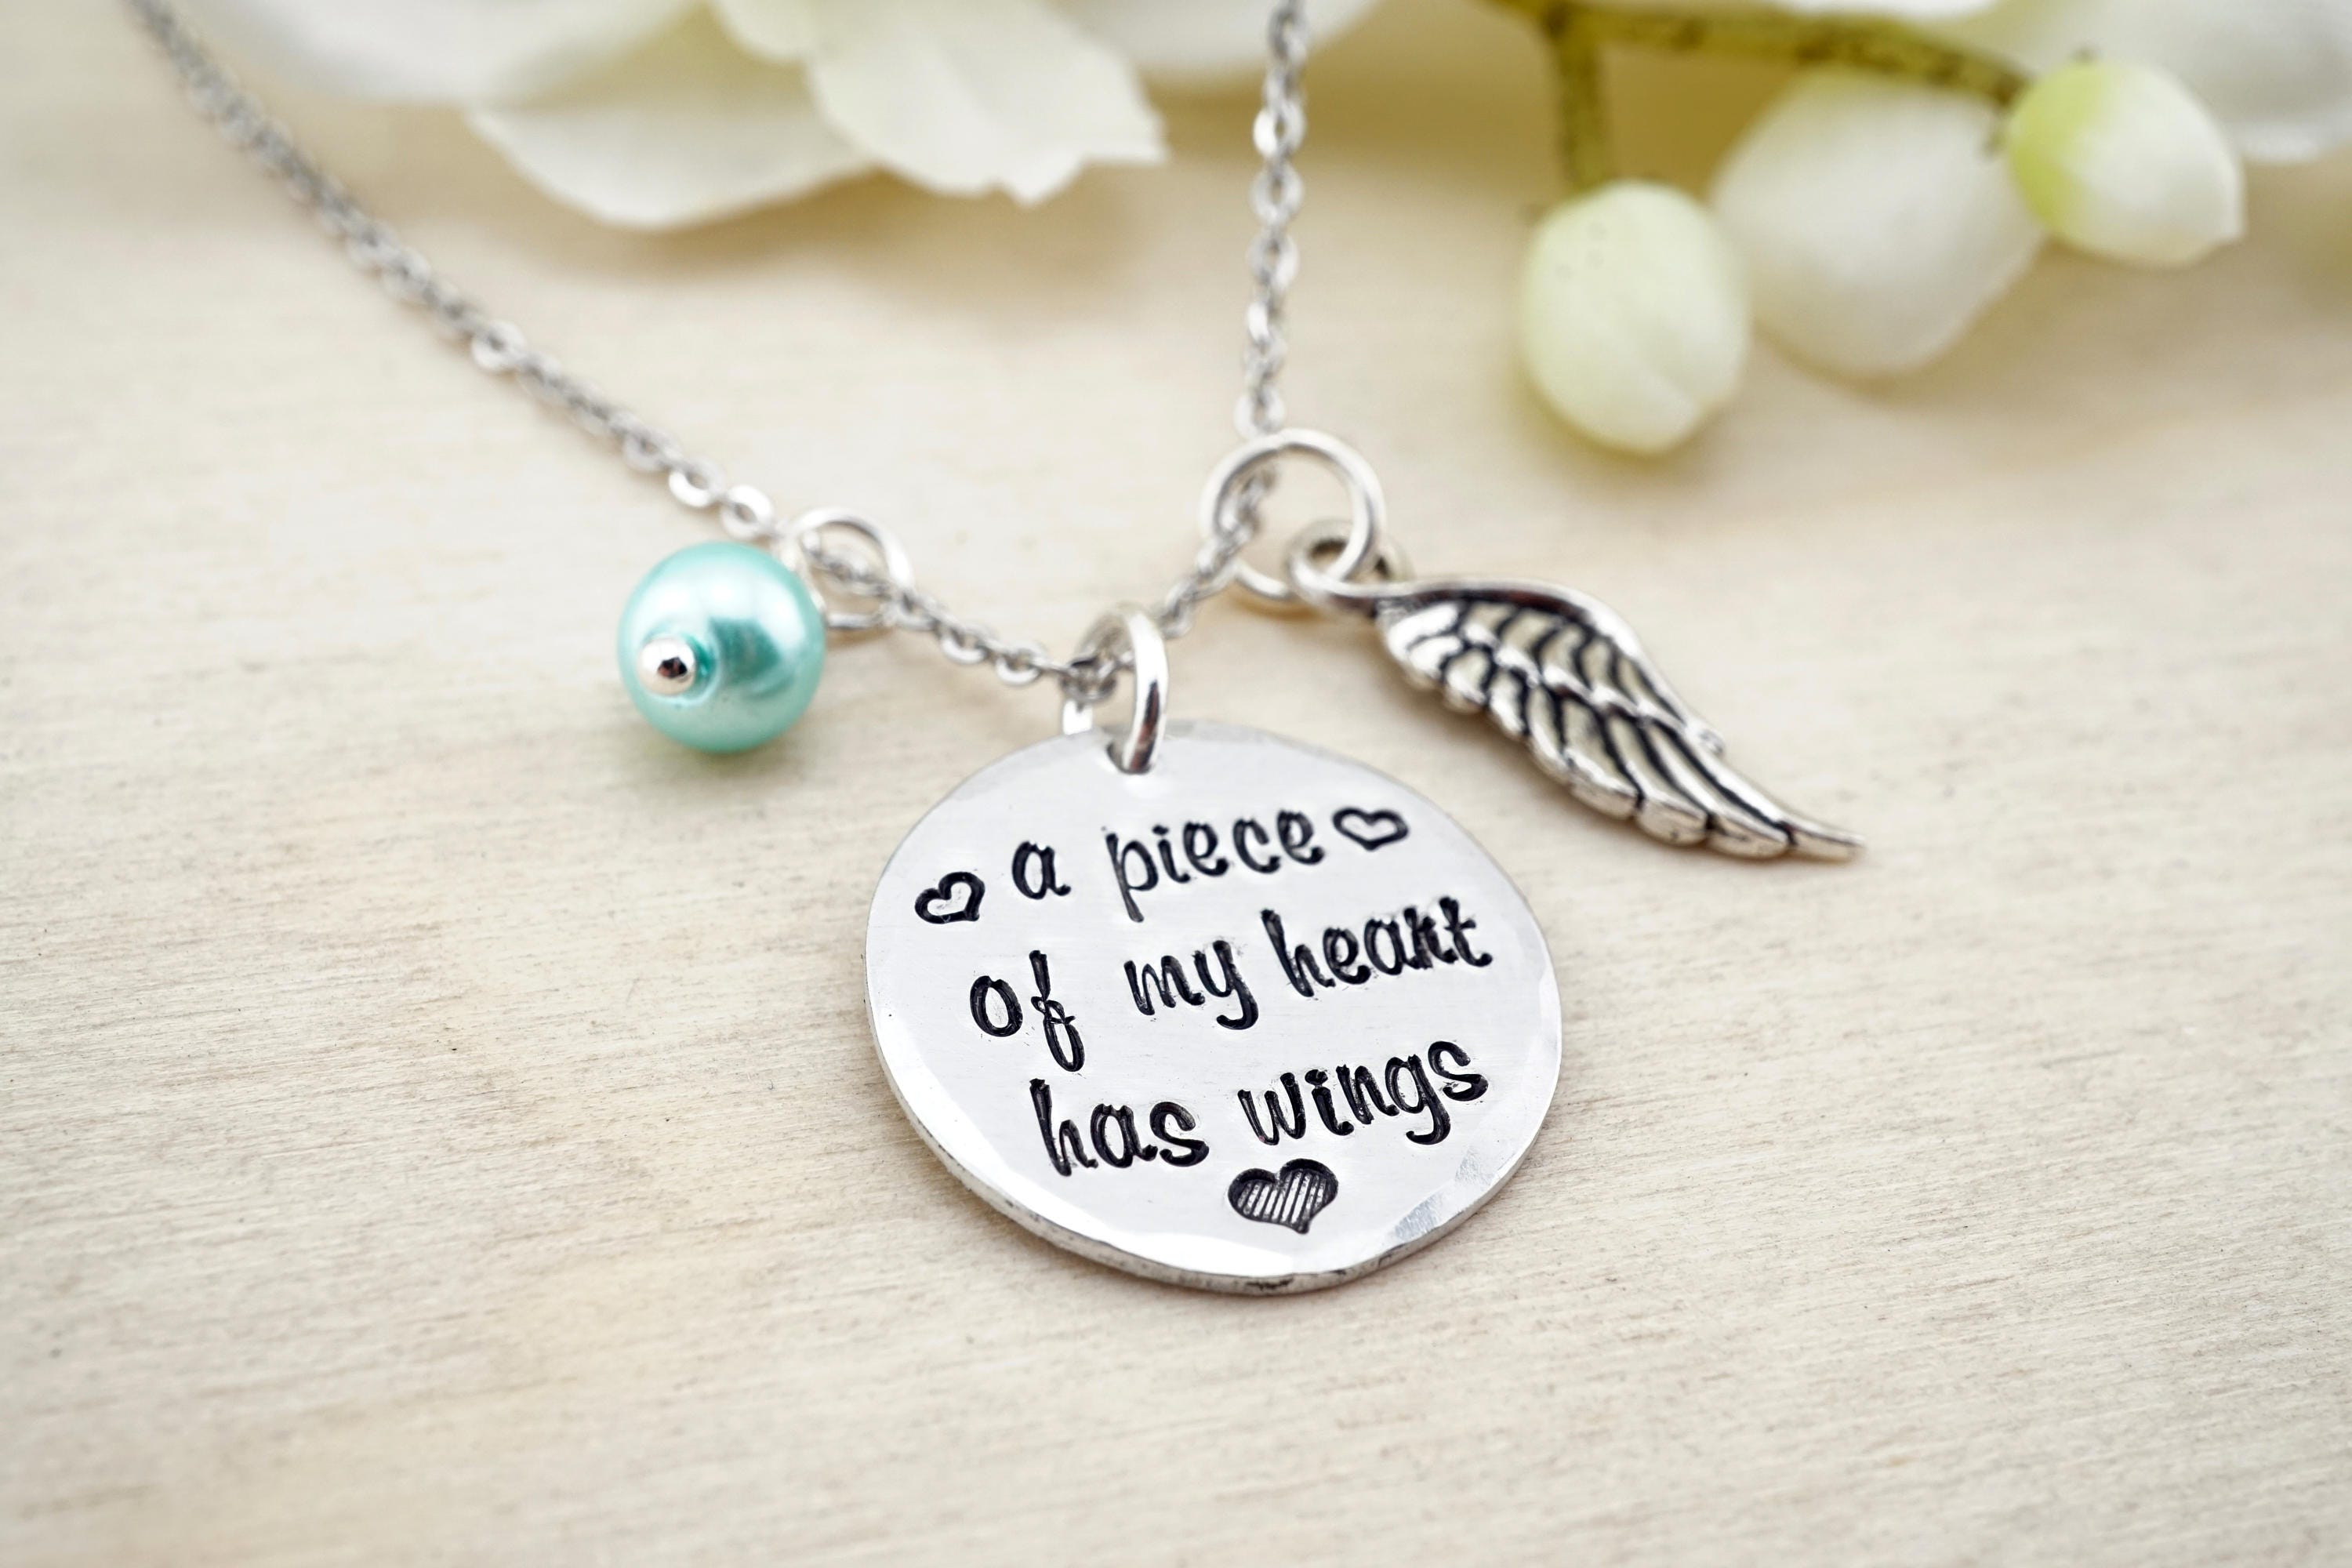 writing silver your size large ones loved oval actual pendant jewelry pin chain necklace with memorial